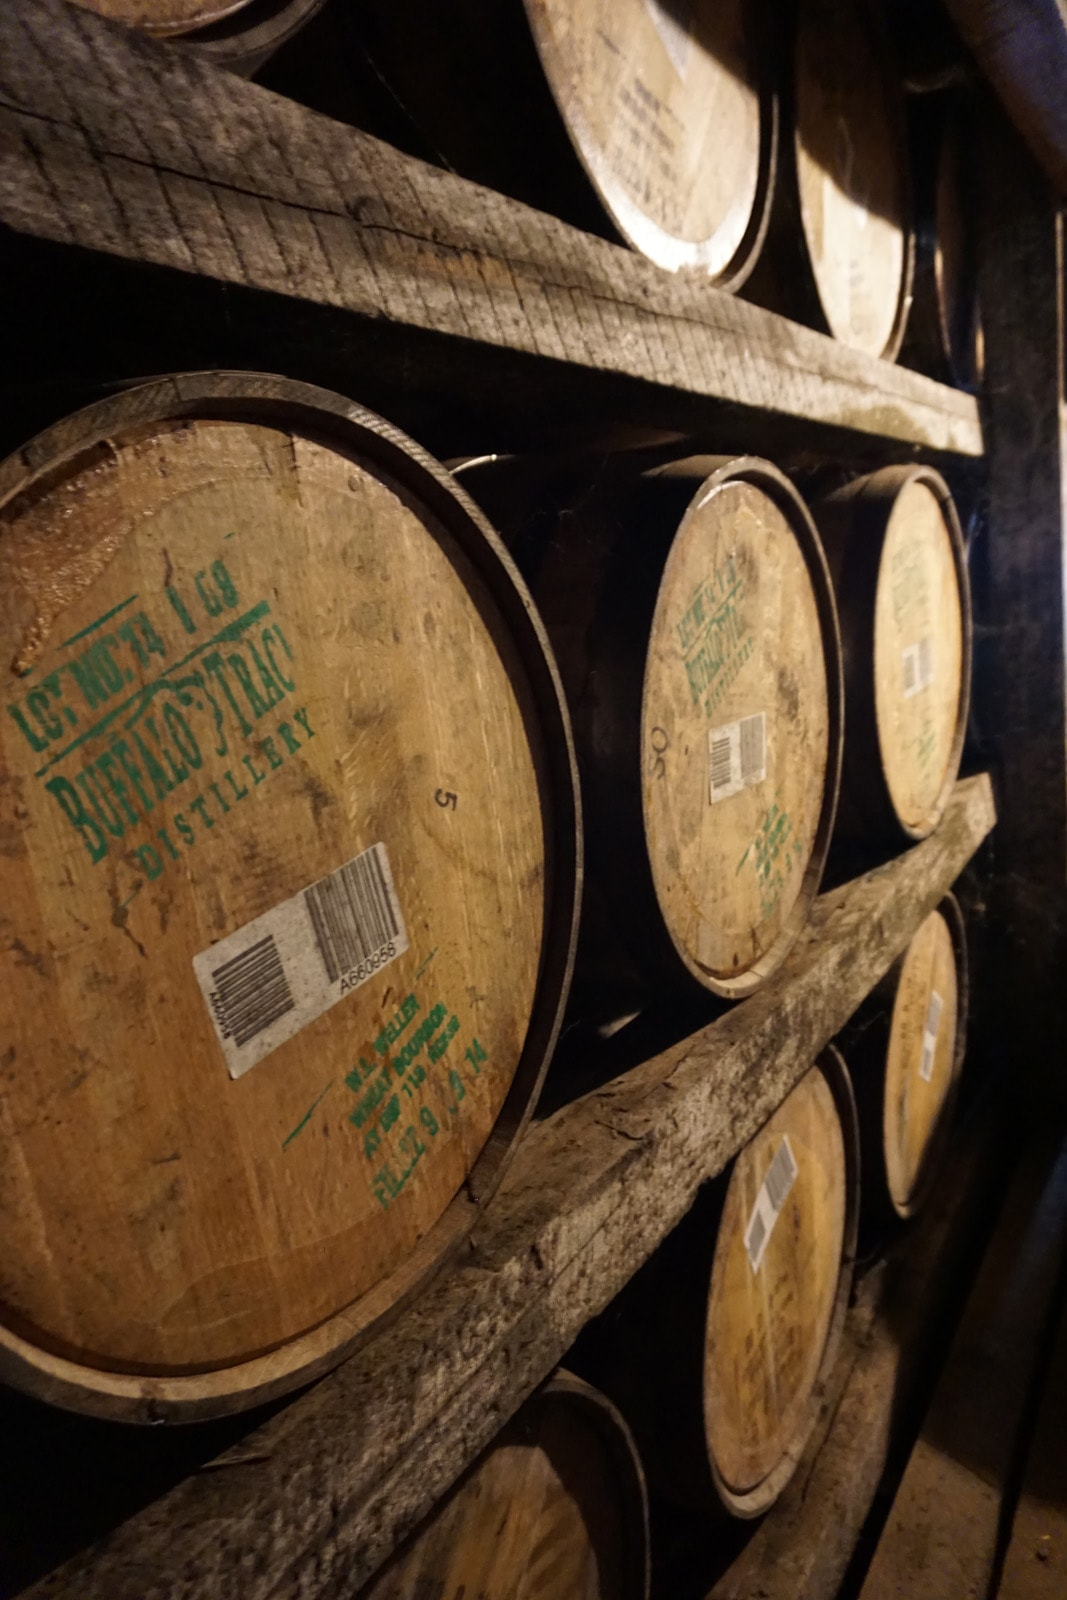 Bourbon barrels at Buffalo Trace distillery